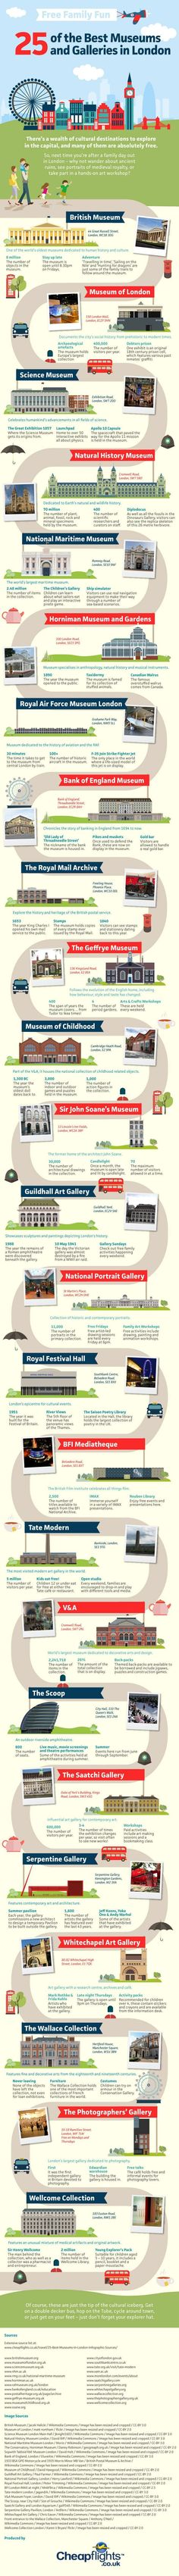 #Travel #tips: 25 Free Things to do in #London  #Infographic: